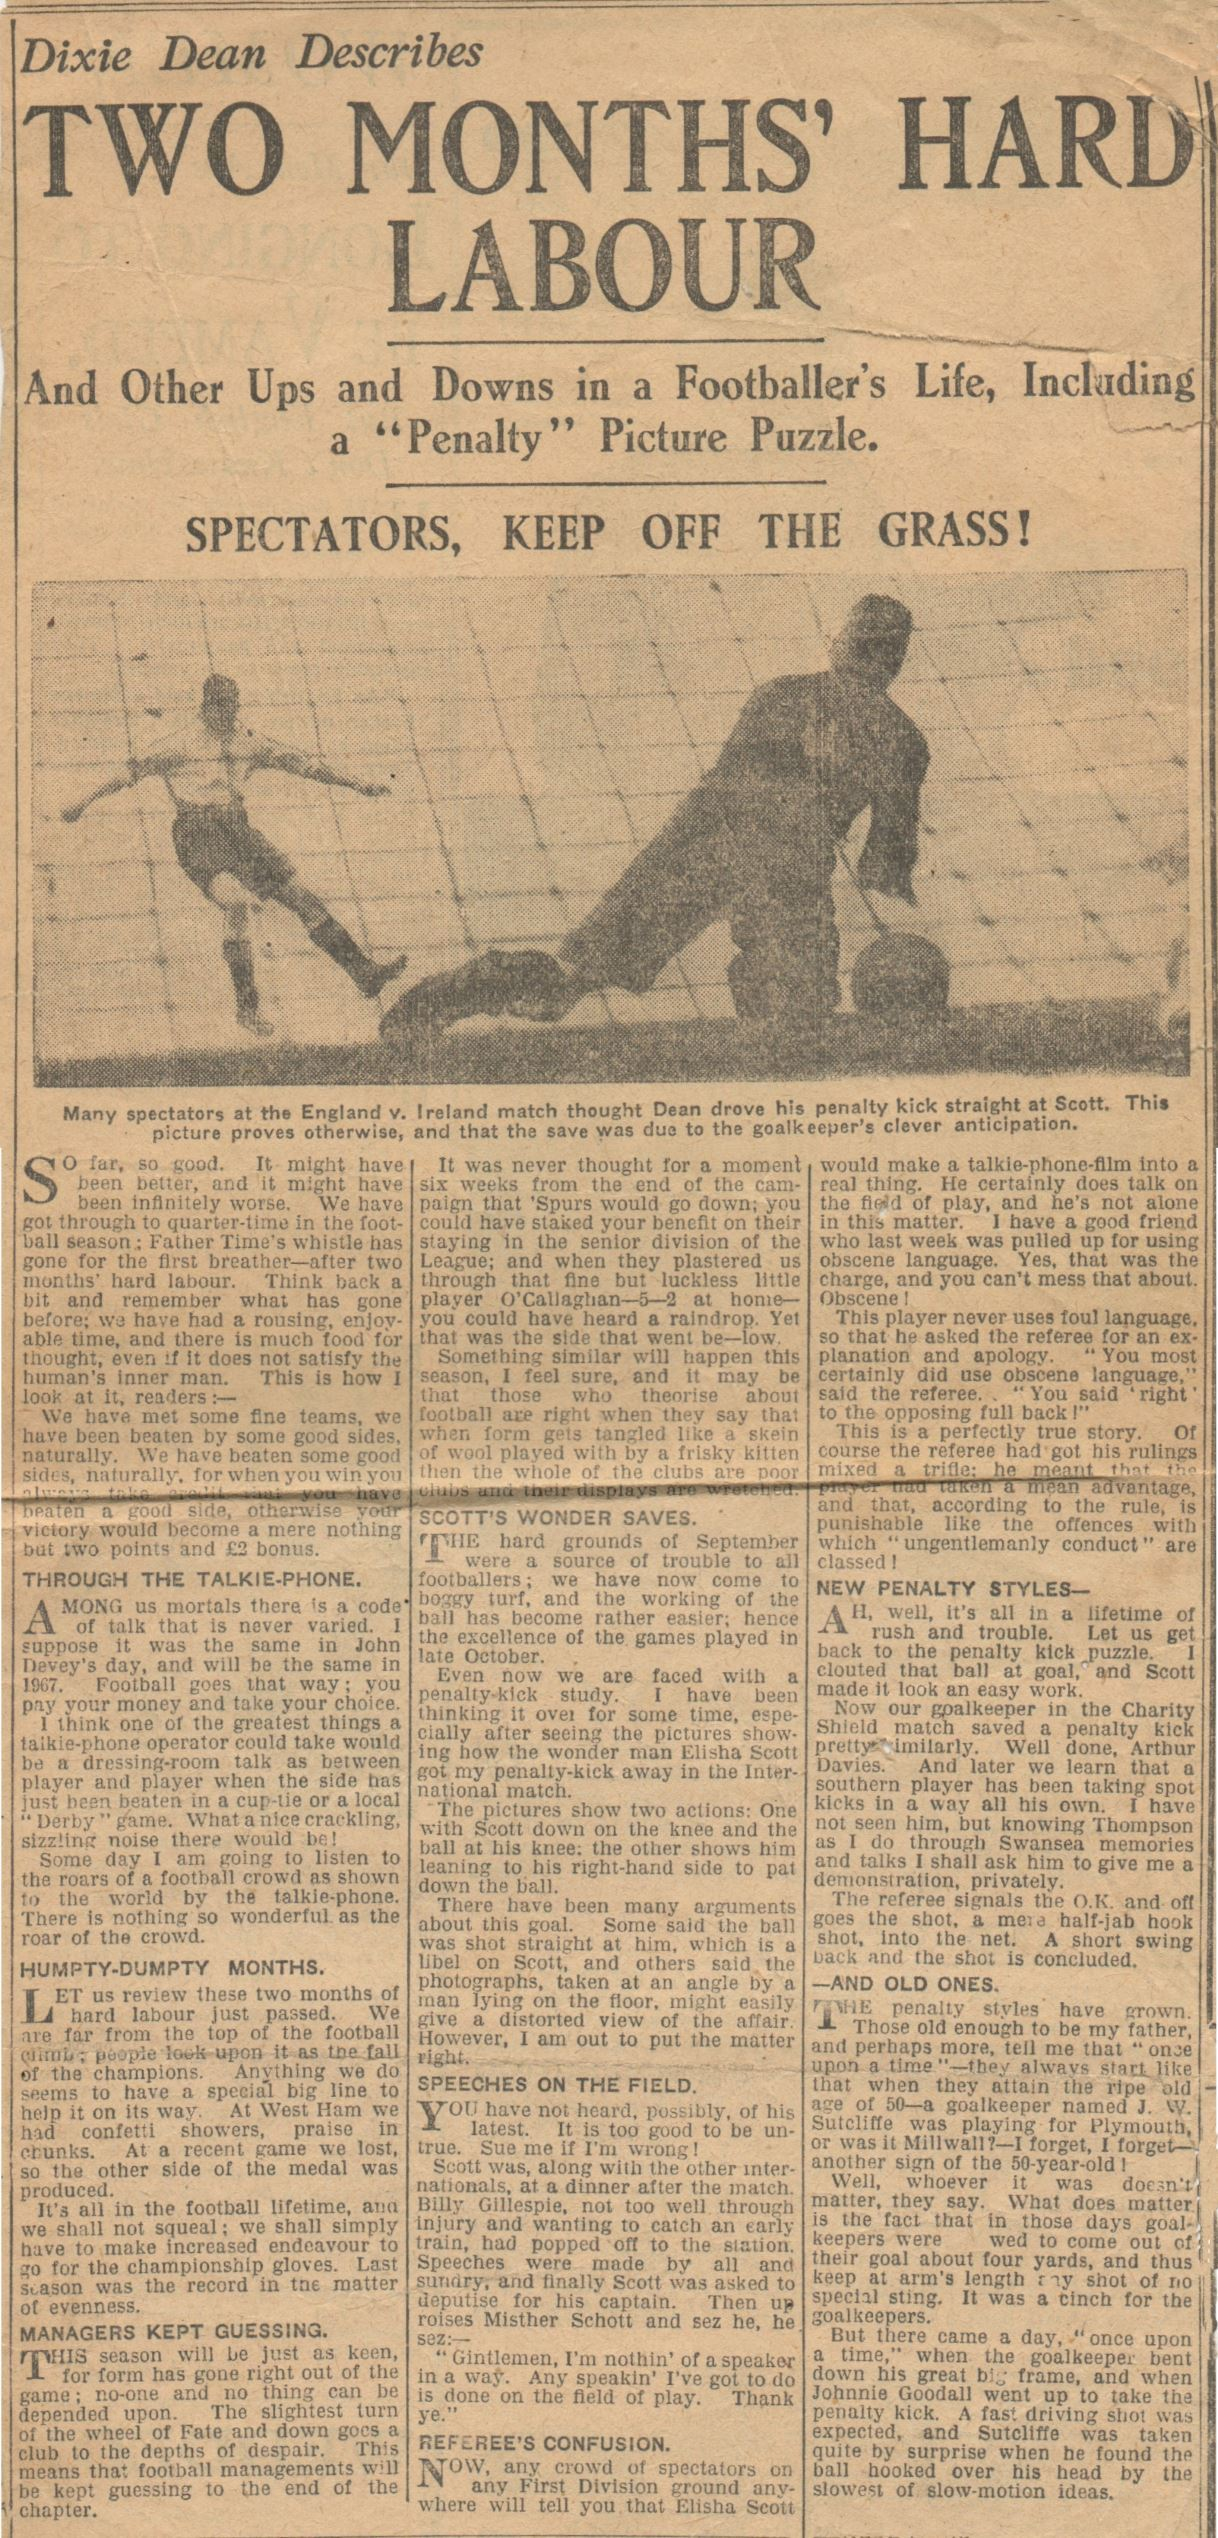 Two months' hard labour, by Dixie Dean - October 1928